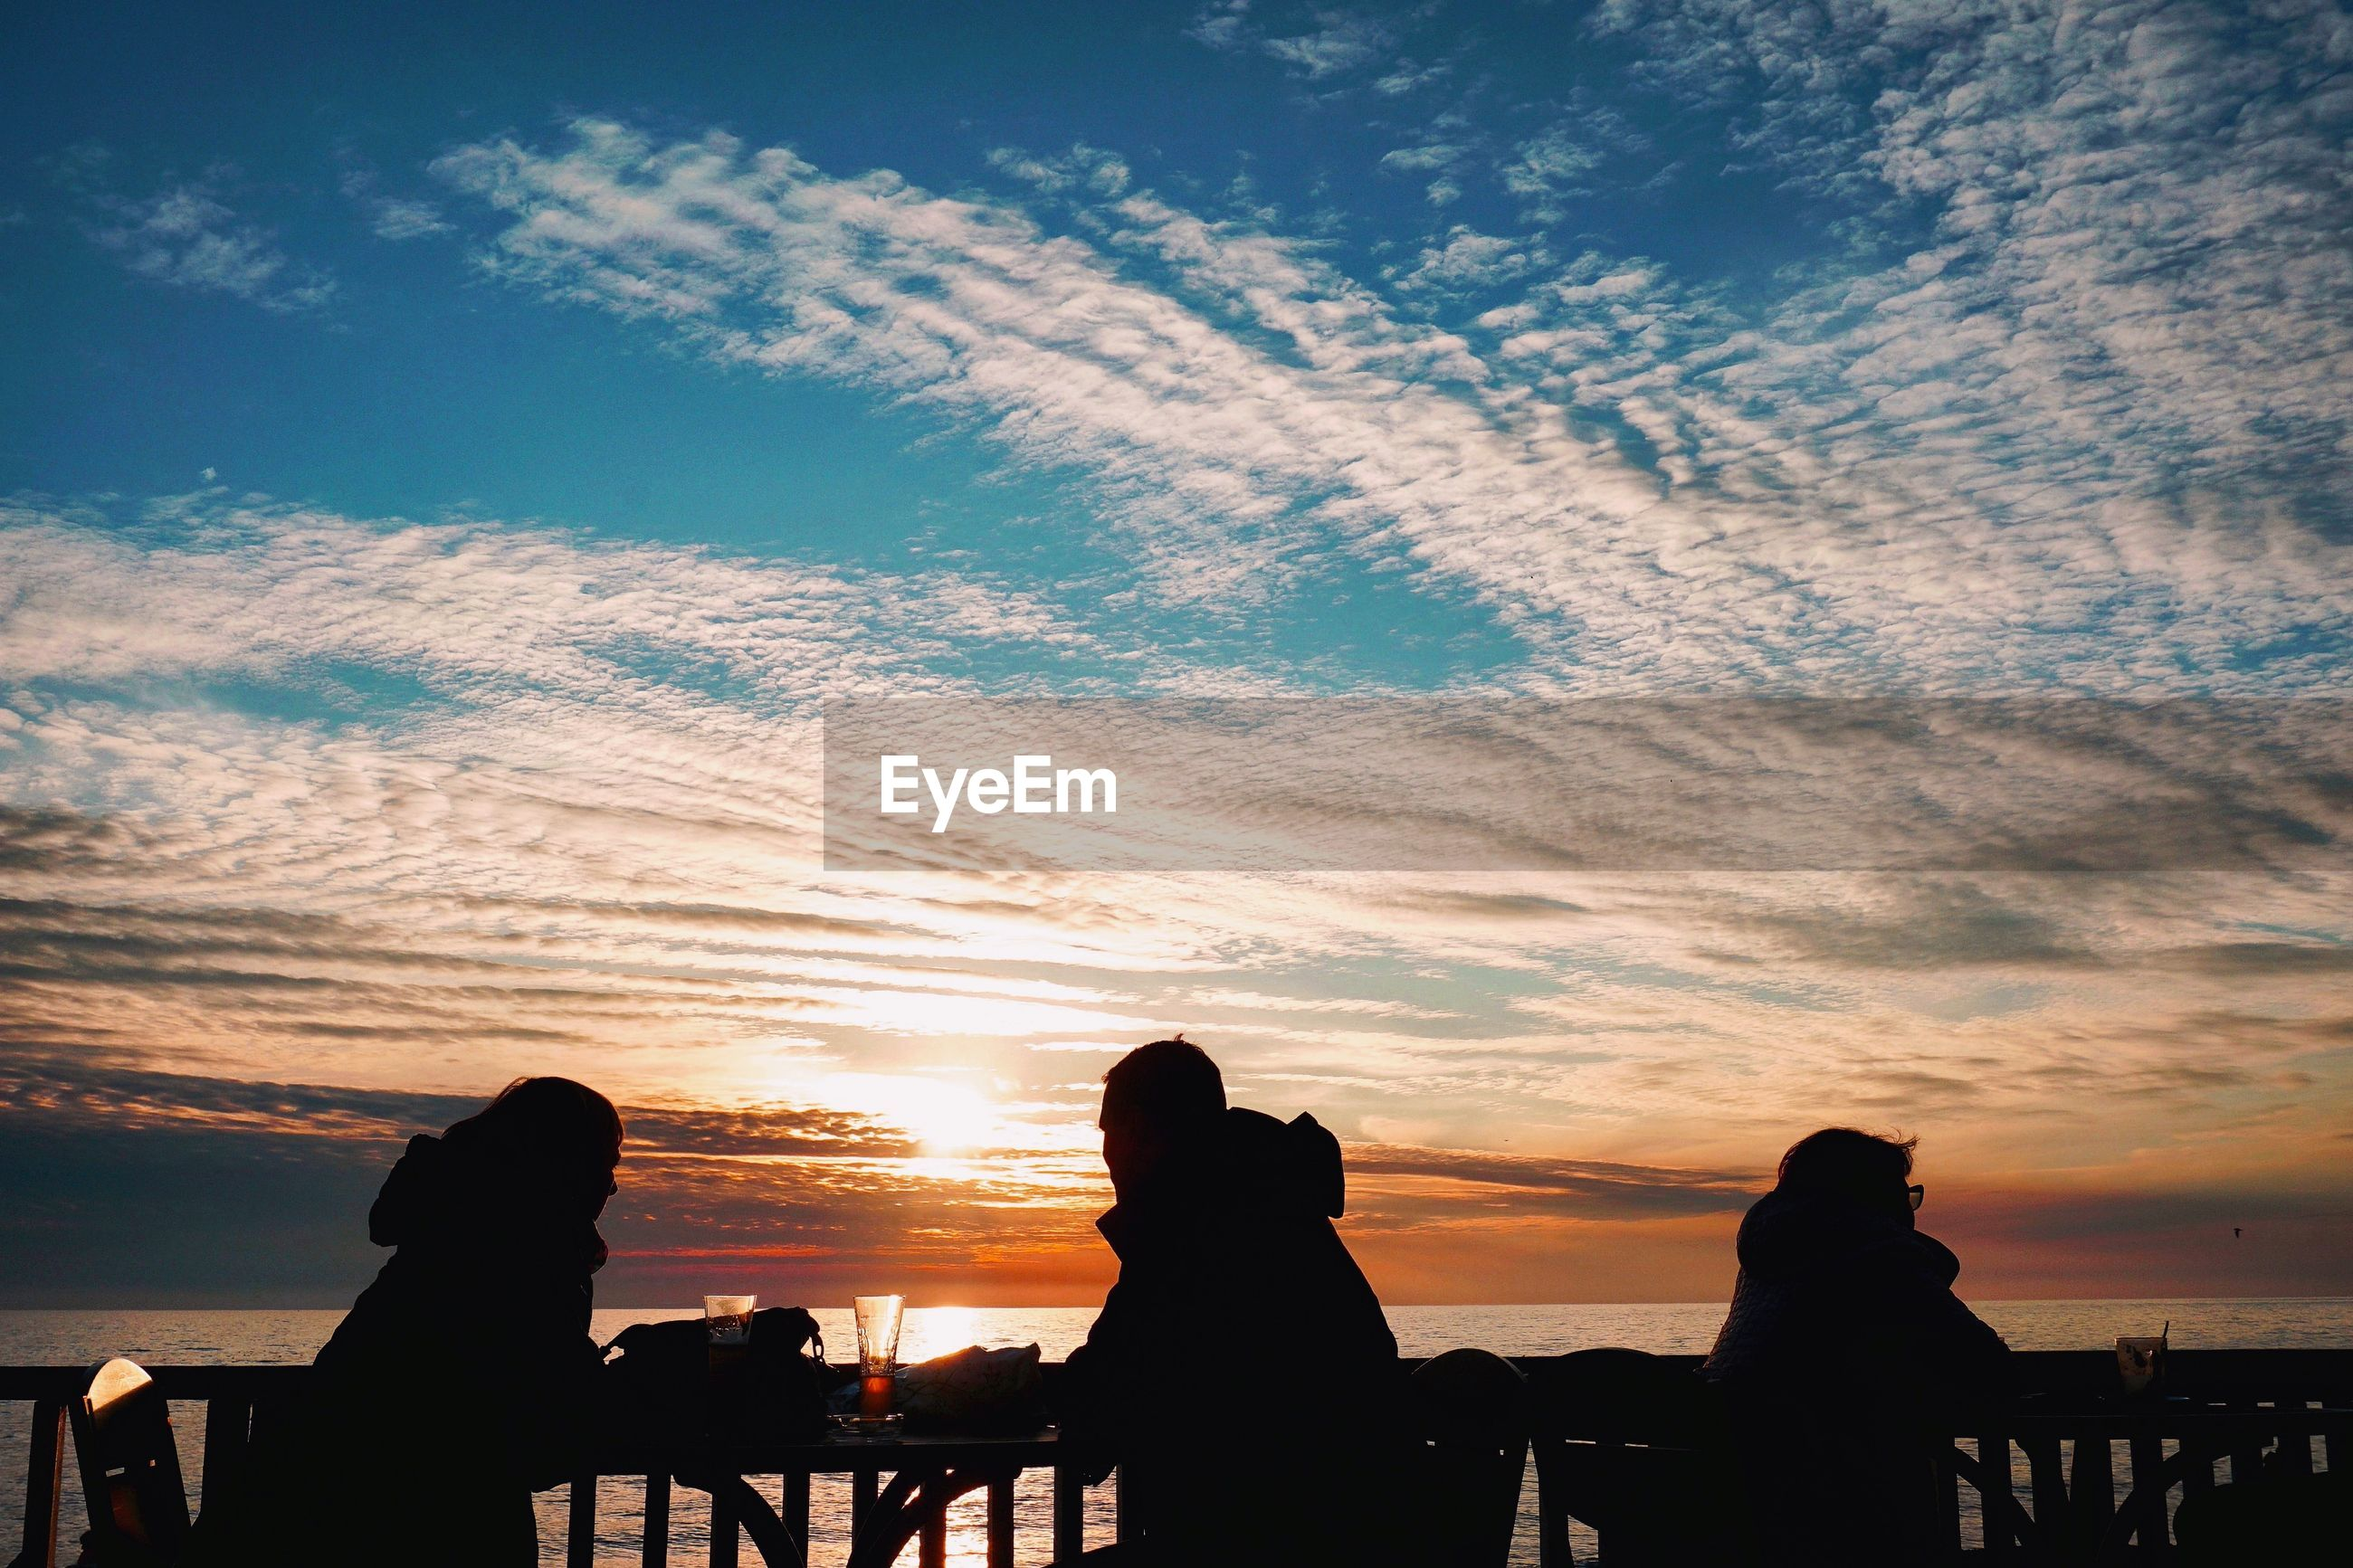 Silhouette people sitting at table by sea against cloudy sky during sunset